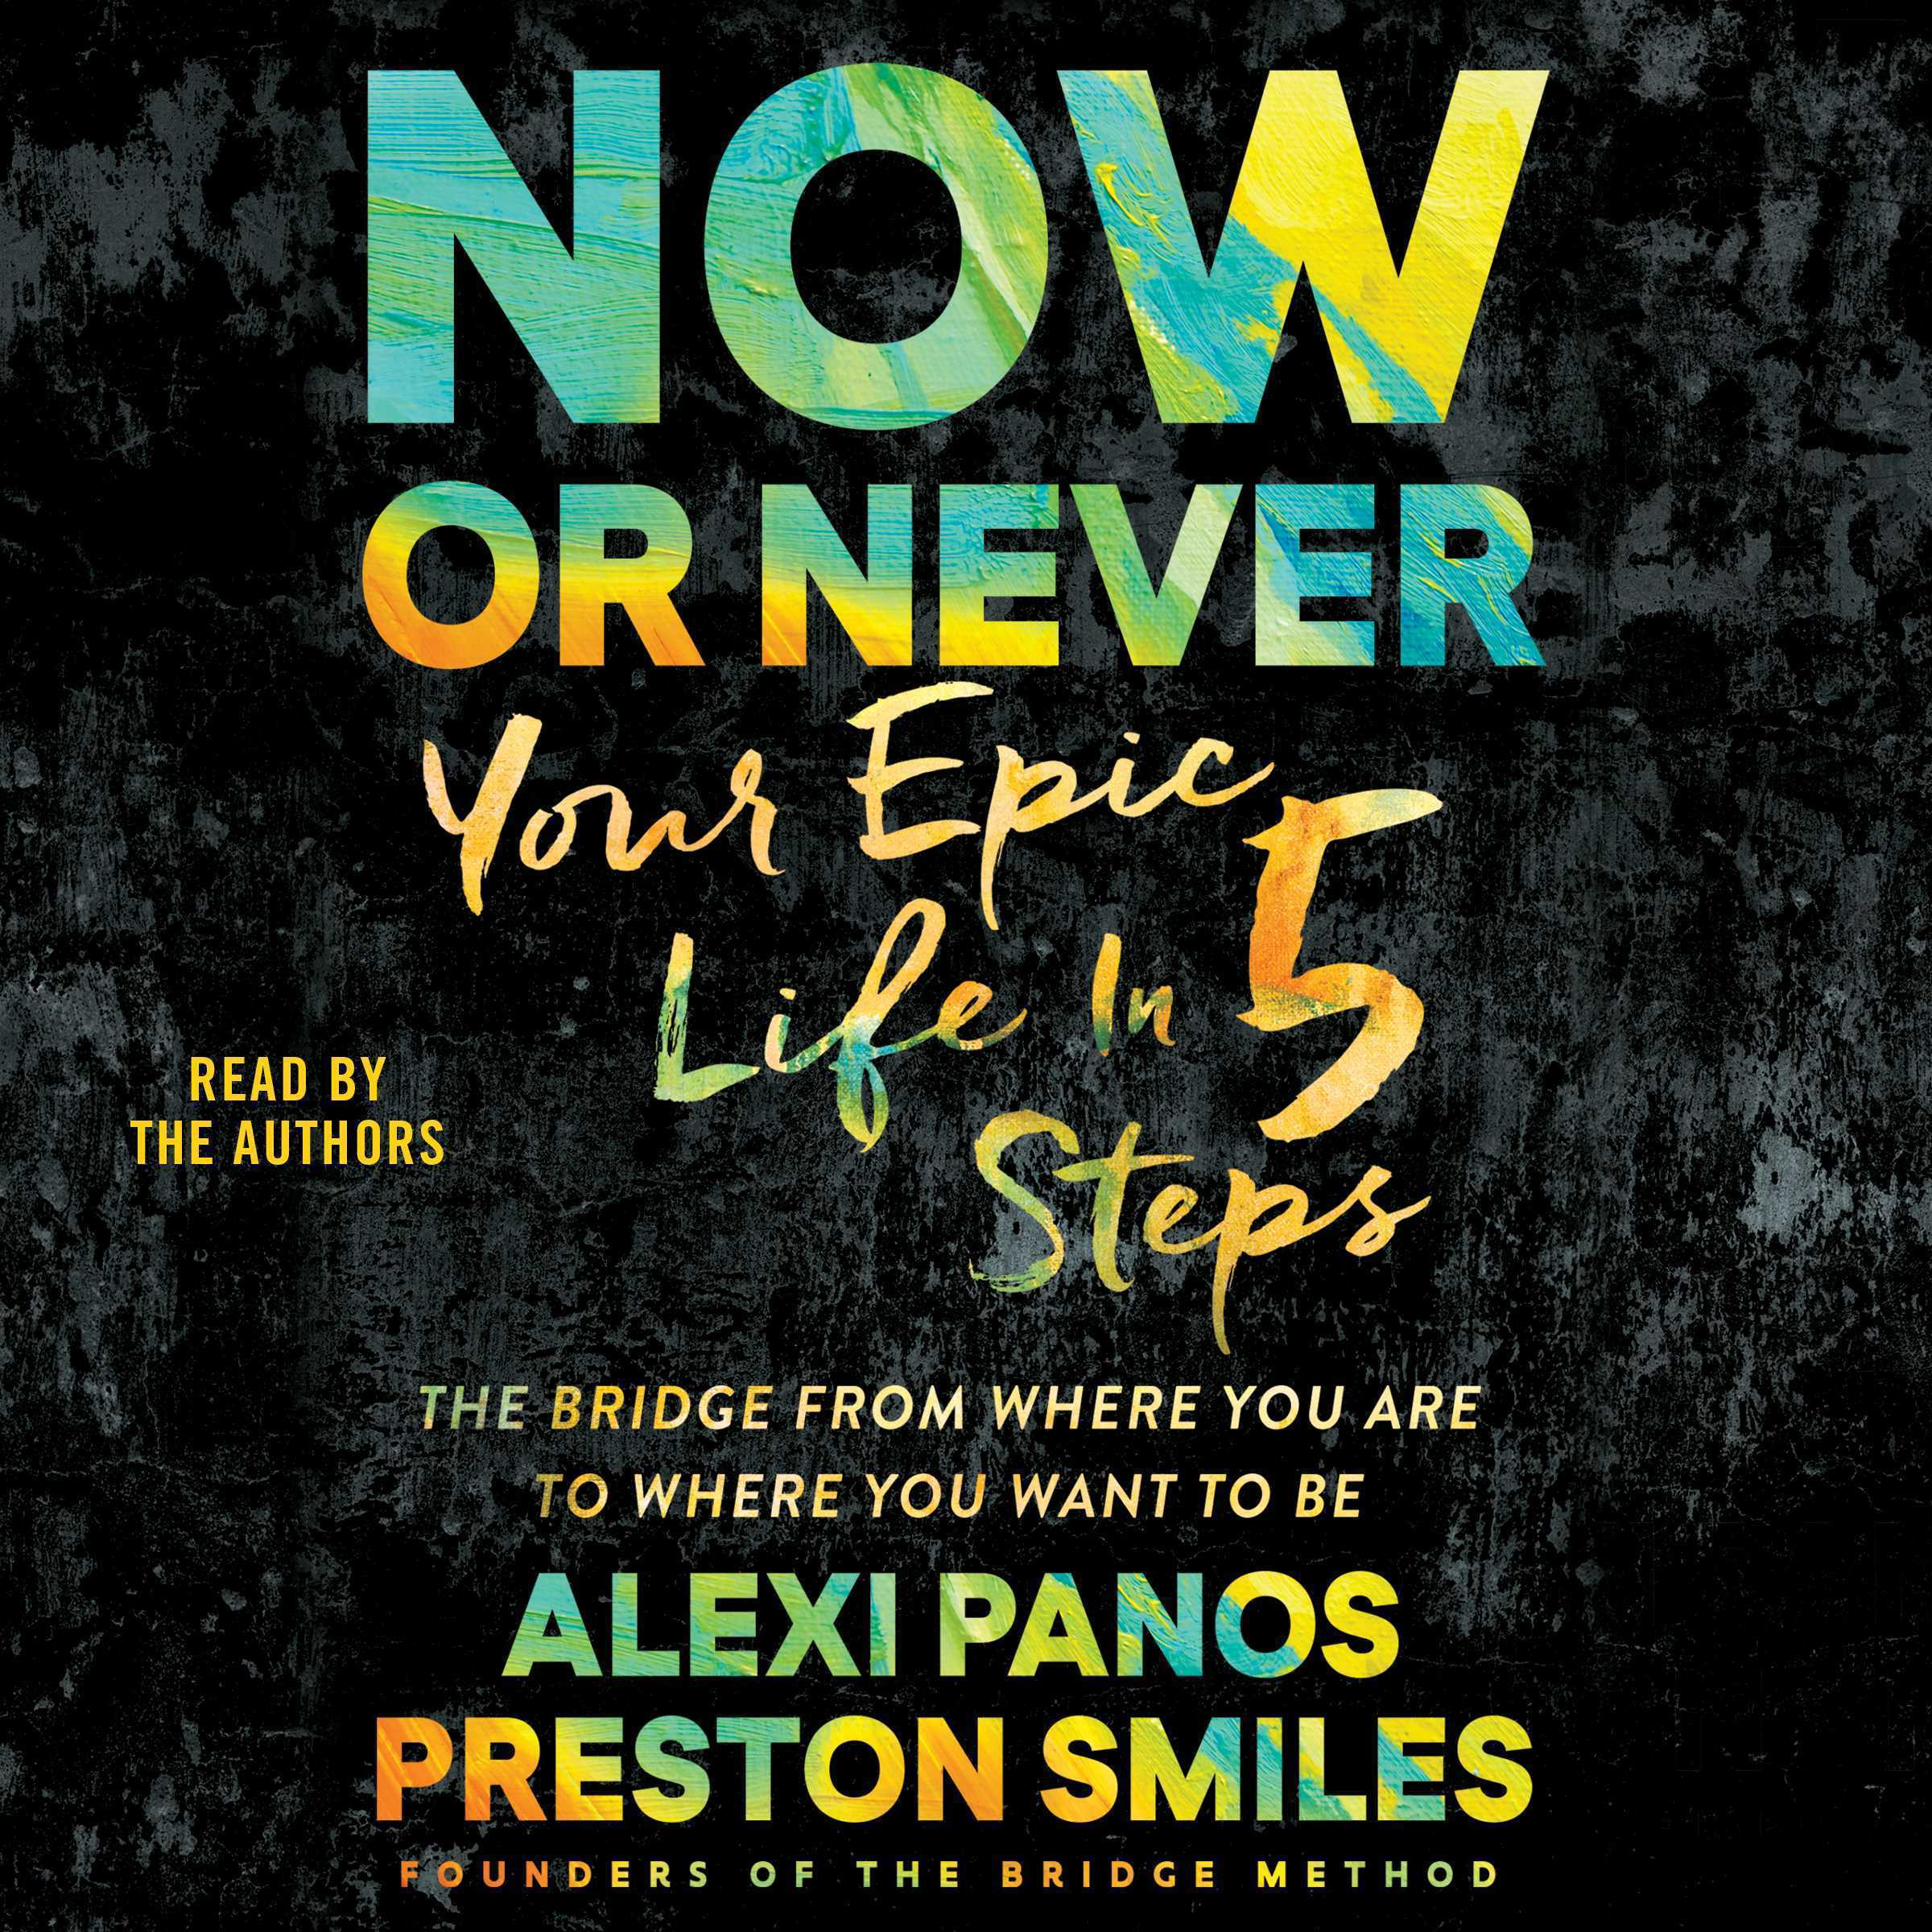 Printable Now or Never: Your Epic Life in 5 Steps Audiobook Cover Art